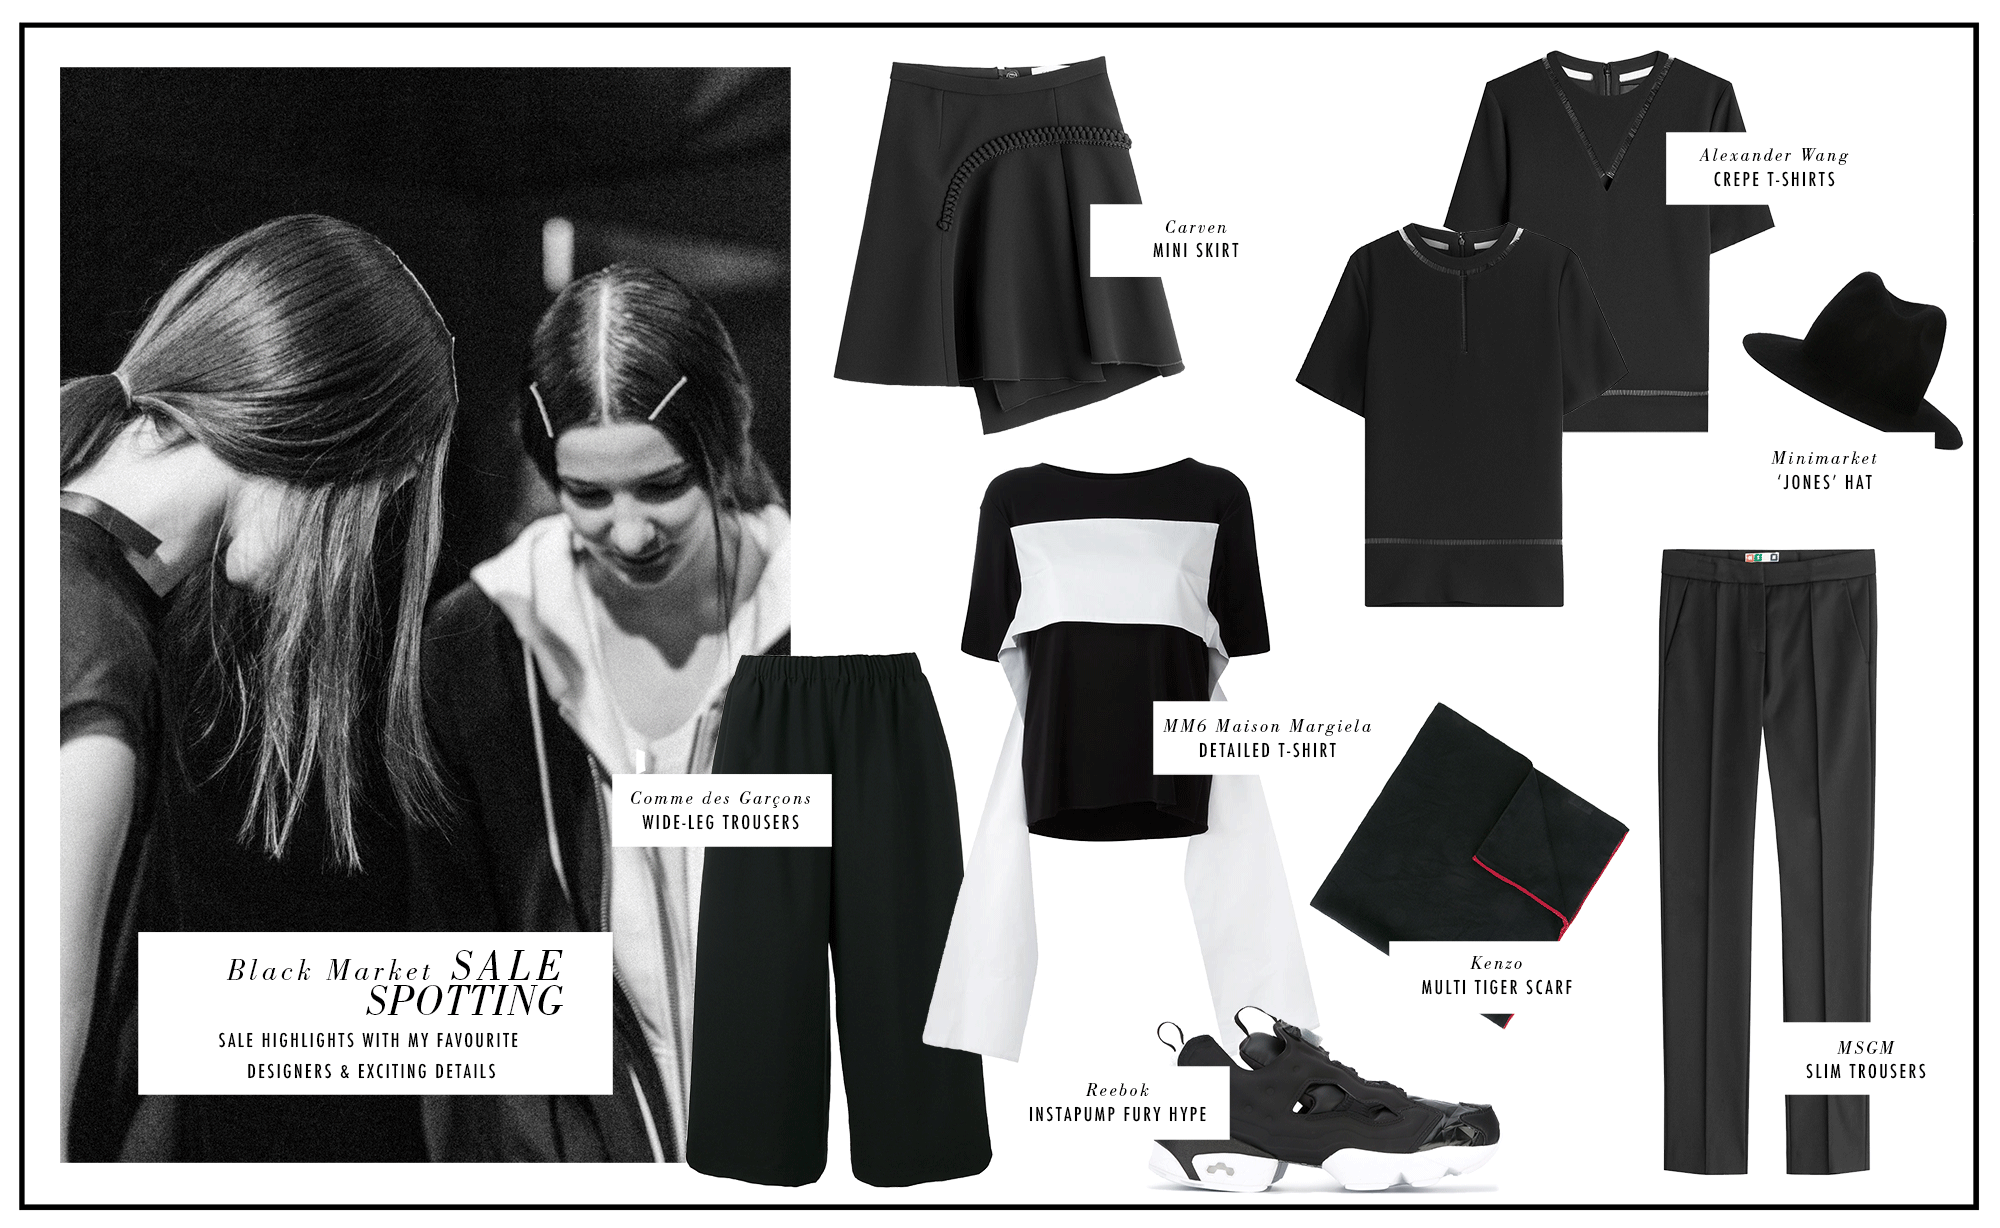 SALE Cravings: MM6 Maison Margiela, Comme des Garcons, Kenzo, Minimarket, Alexander Wang, MSMG, Carven / Sale Highlights - all black everything / iHeartAlice.com